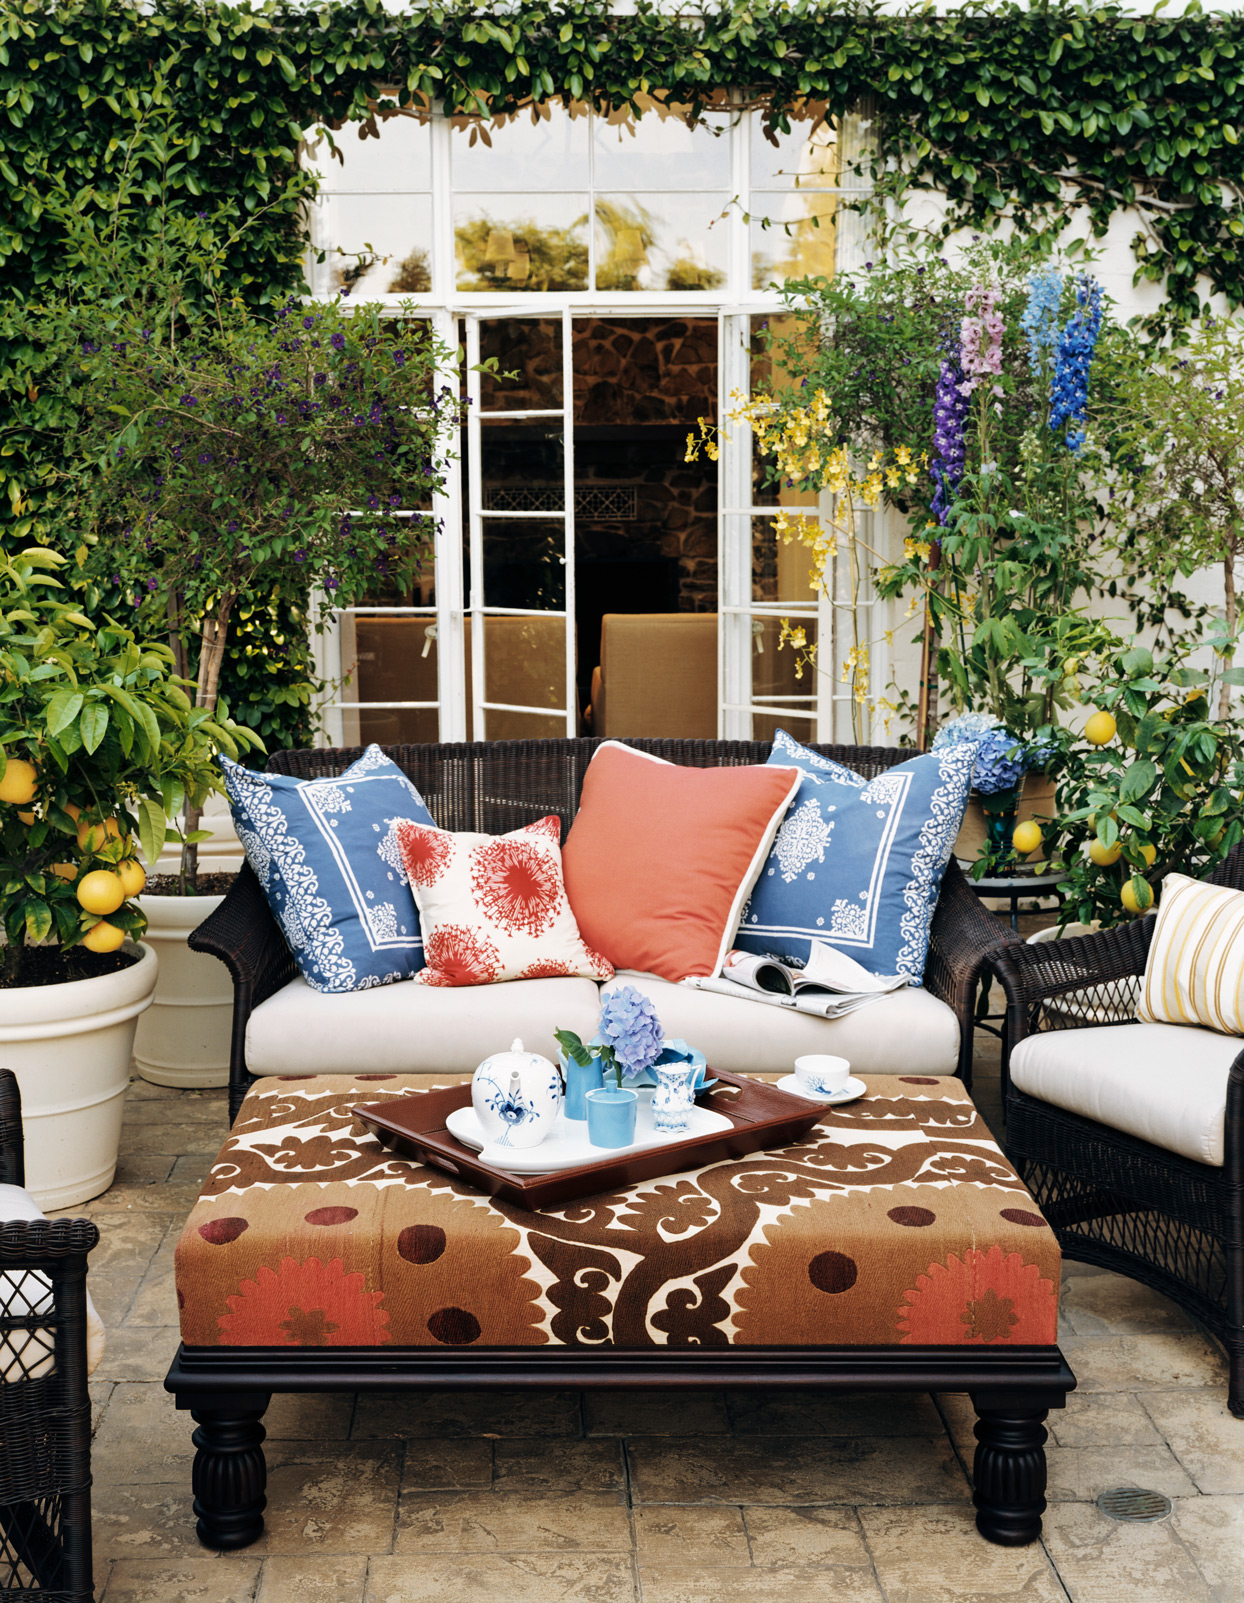 patterned outdoor patio furniture